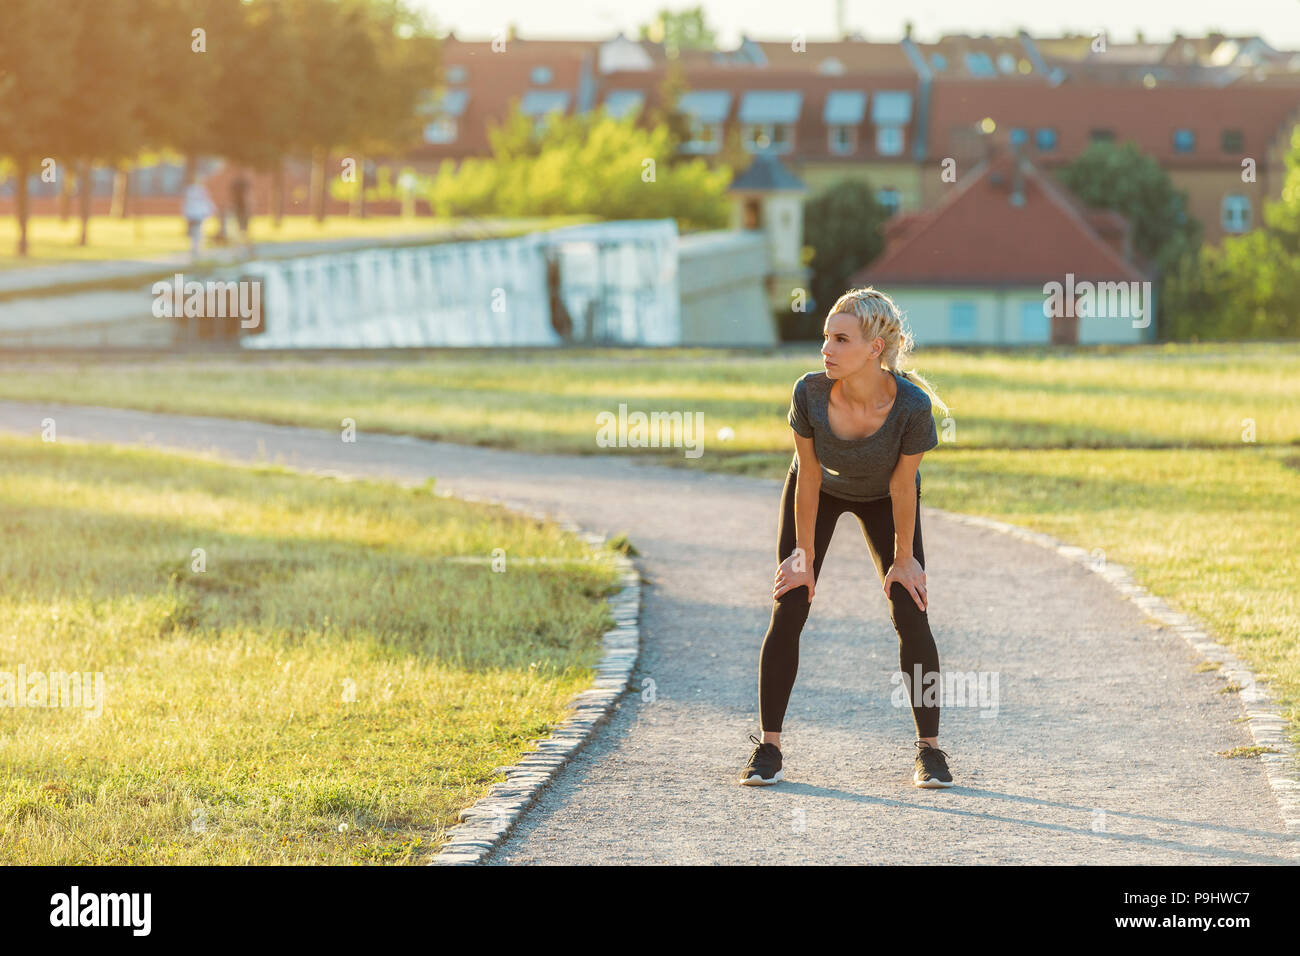 Blond Woman Running In The Park - Stock Photo